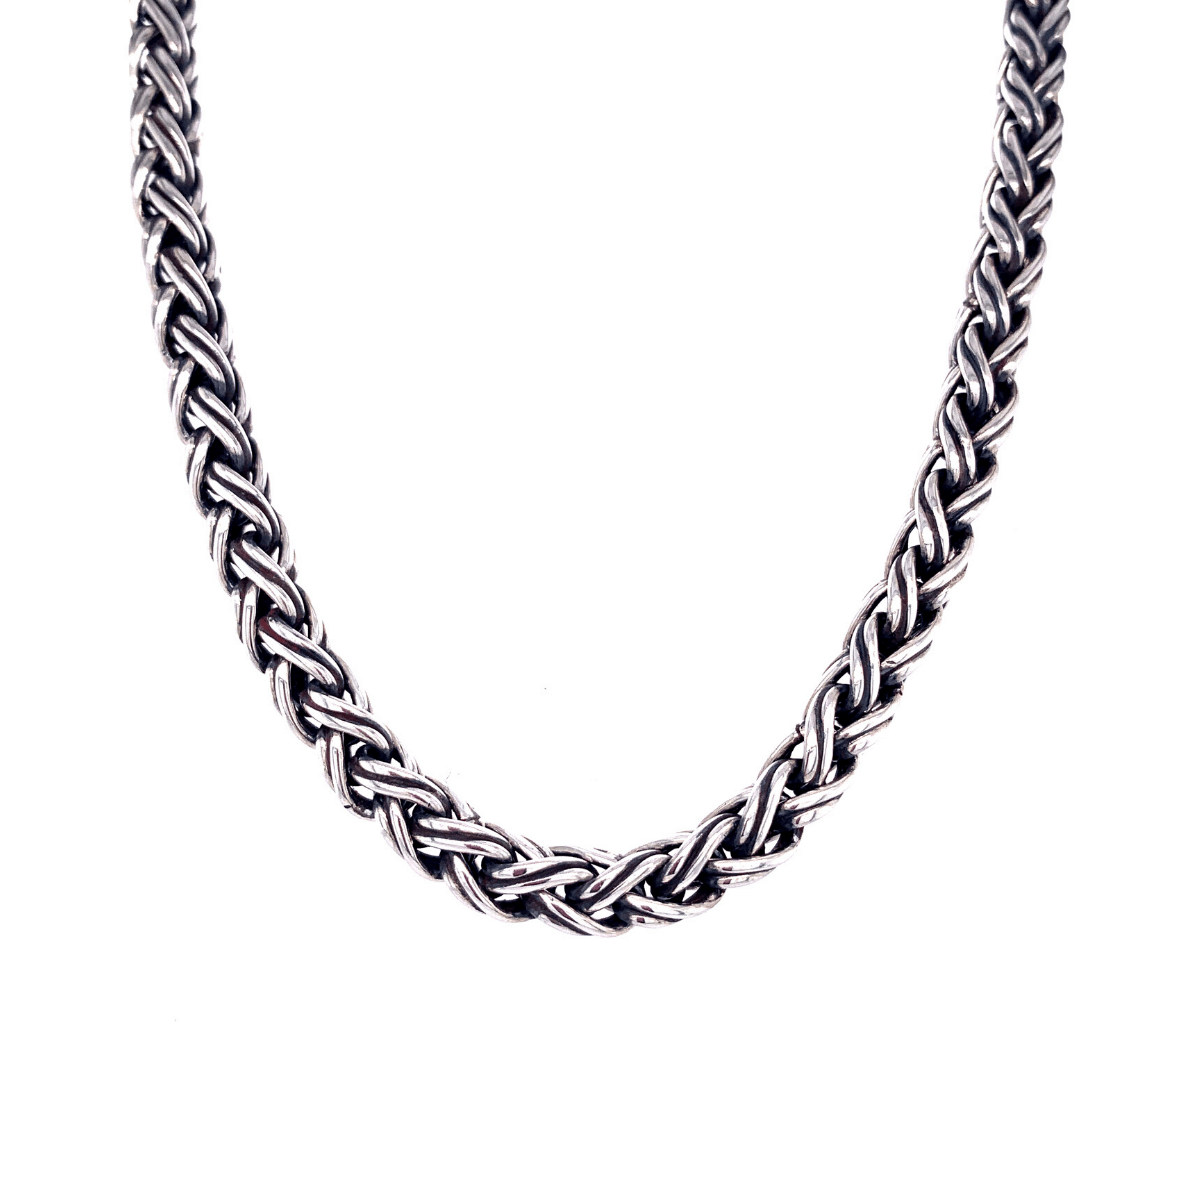 Double Braided Large Sterling Silver Necklace - Qinti - The Peruvian Shop